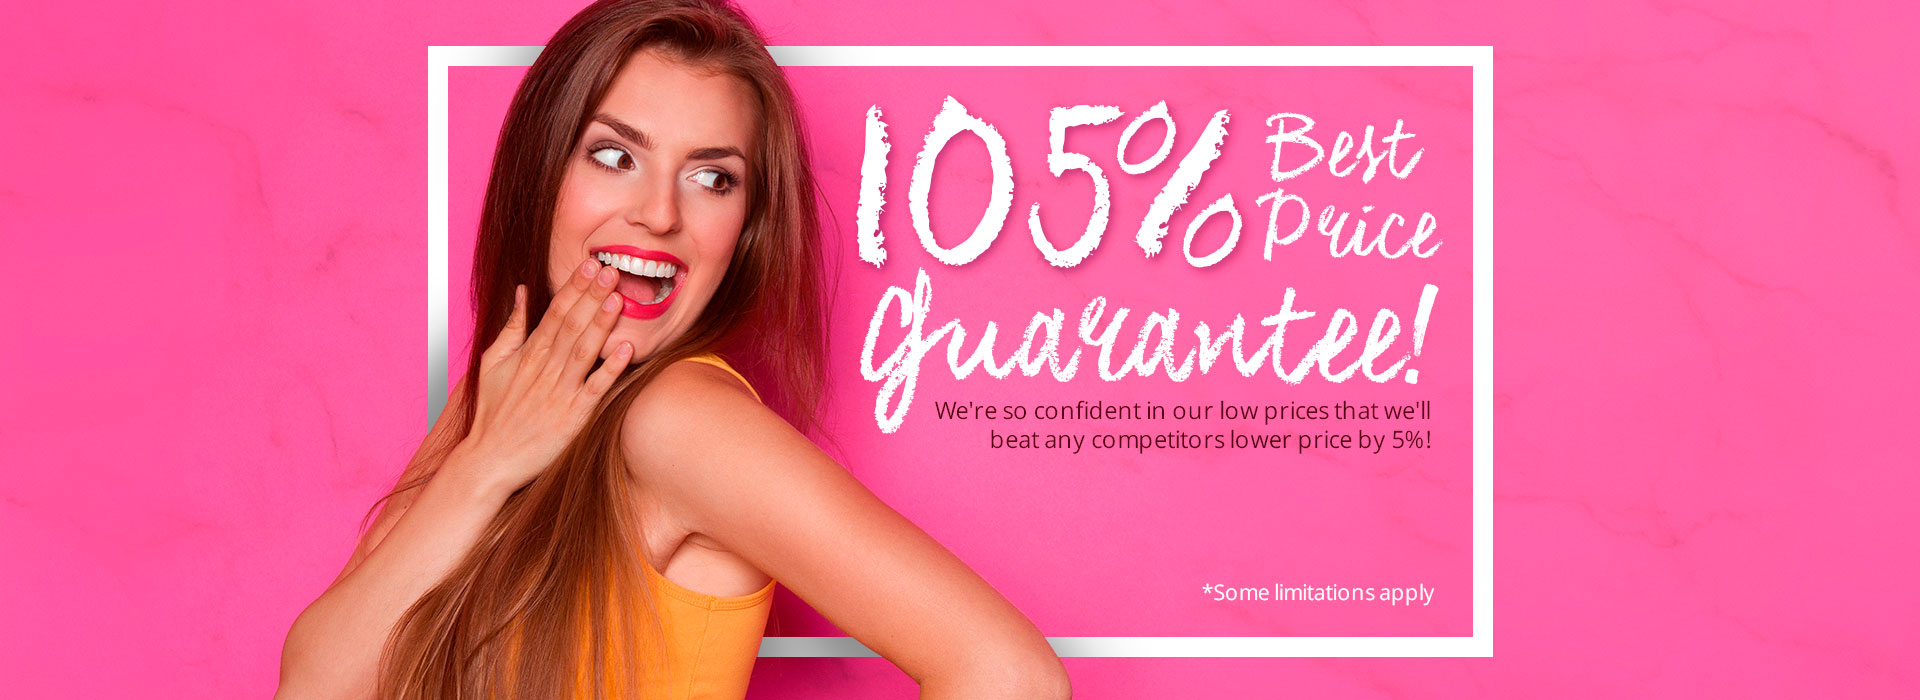 105% Best Price Guarantee